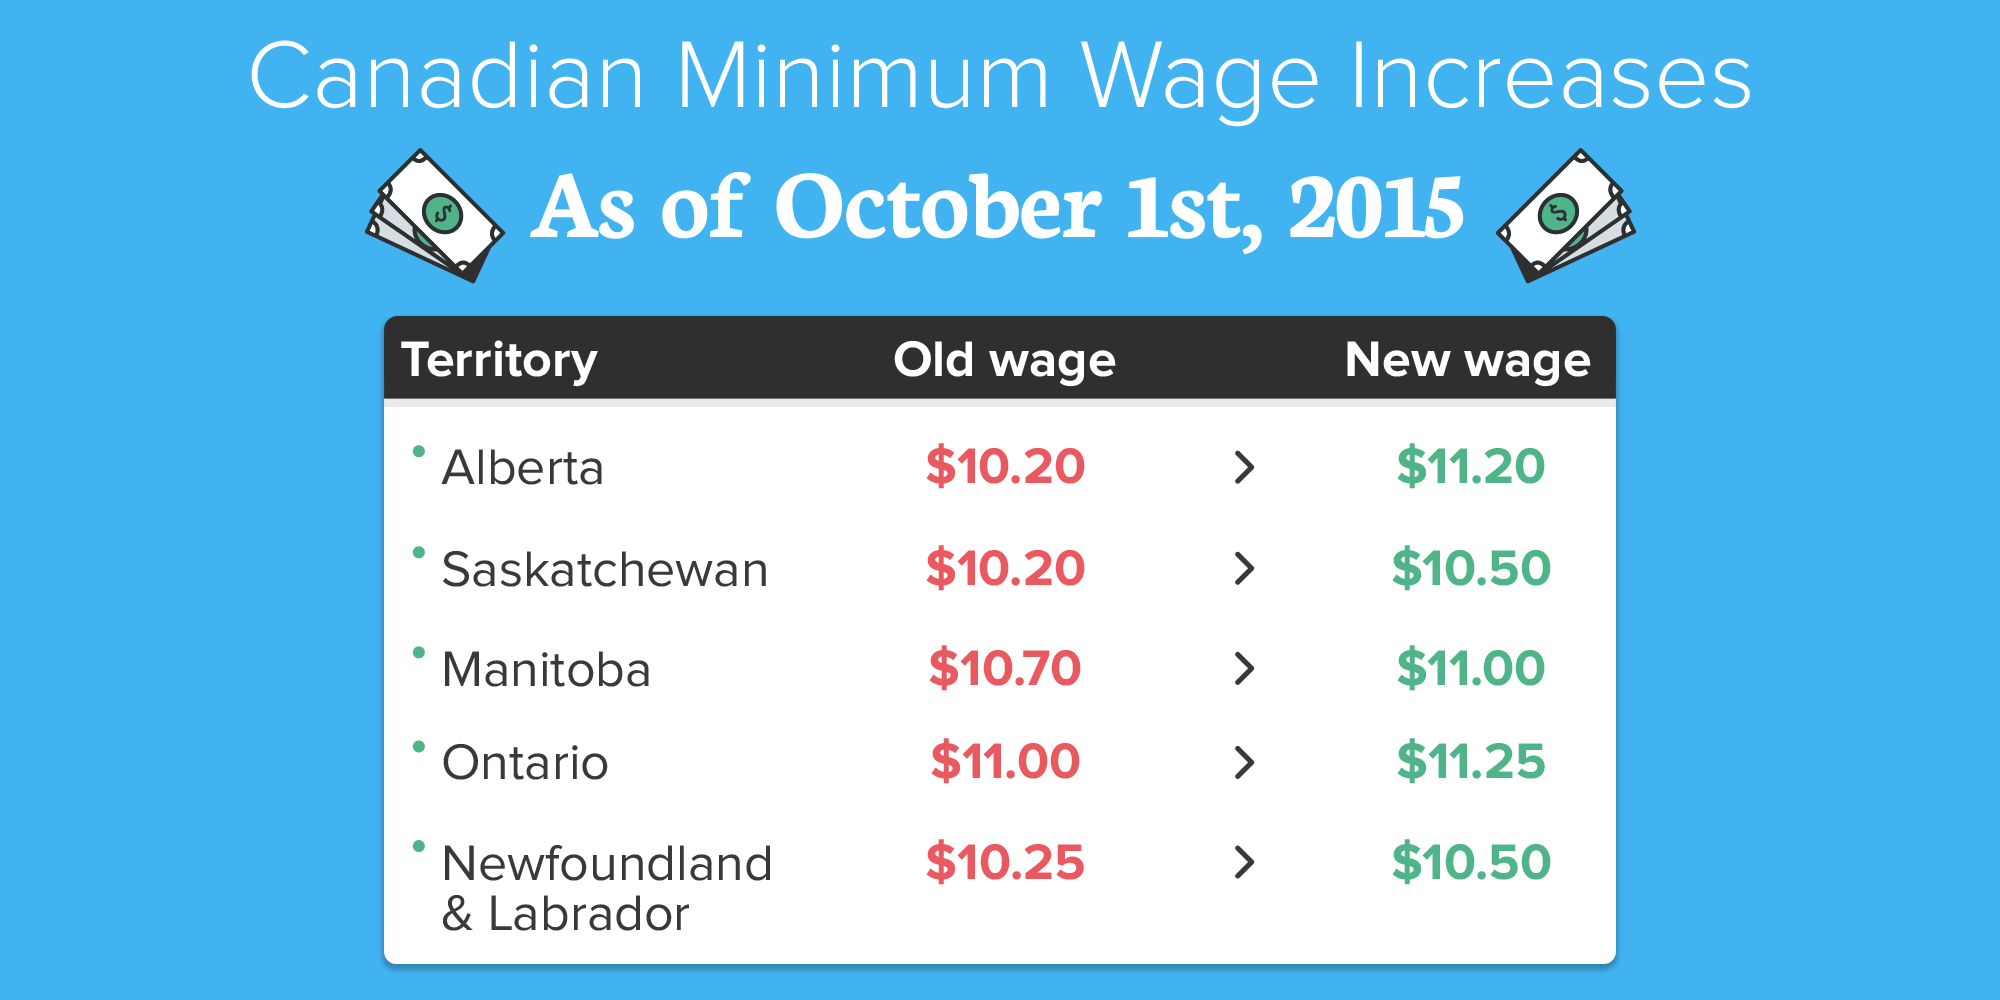 Canadian Minimum Wage Increases Oct 1st 2015